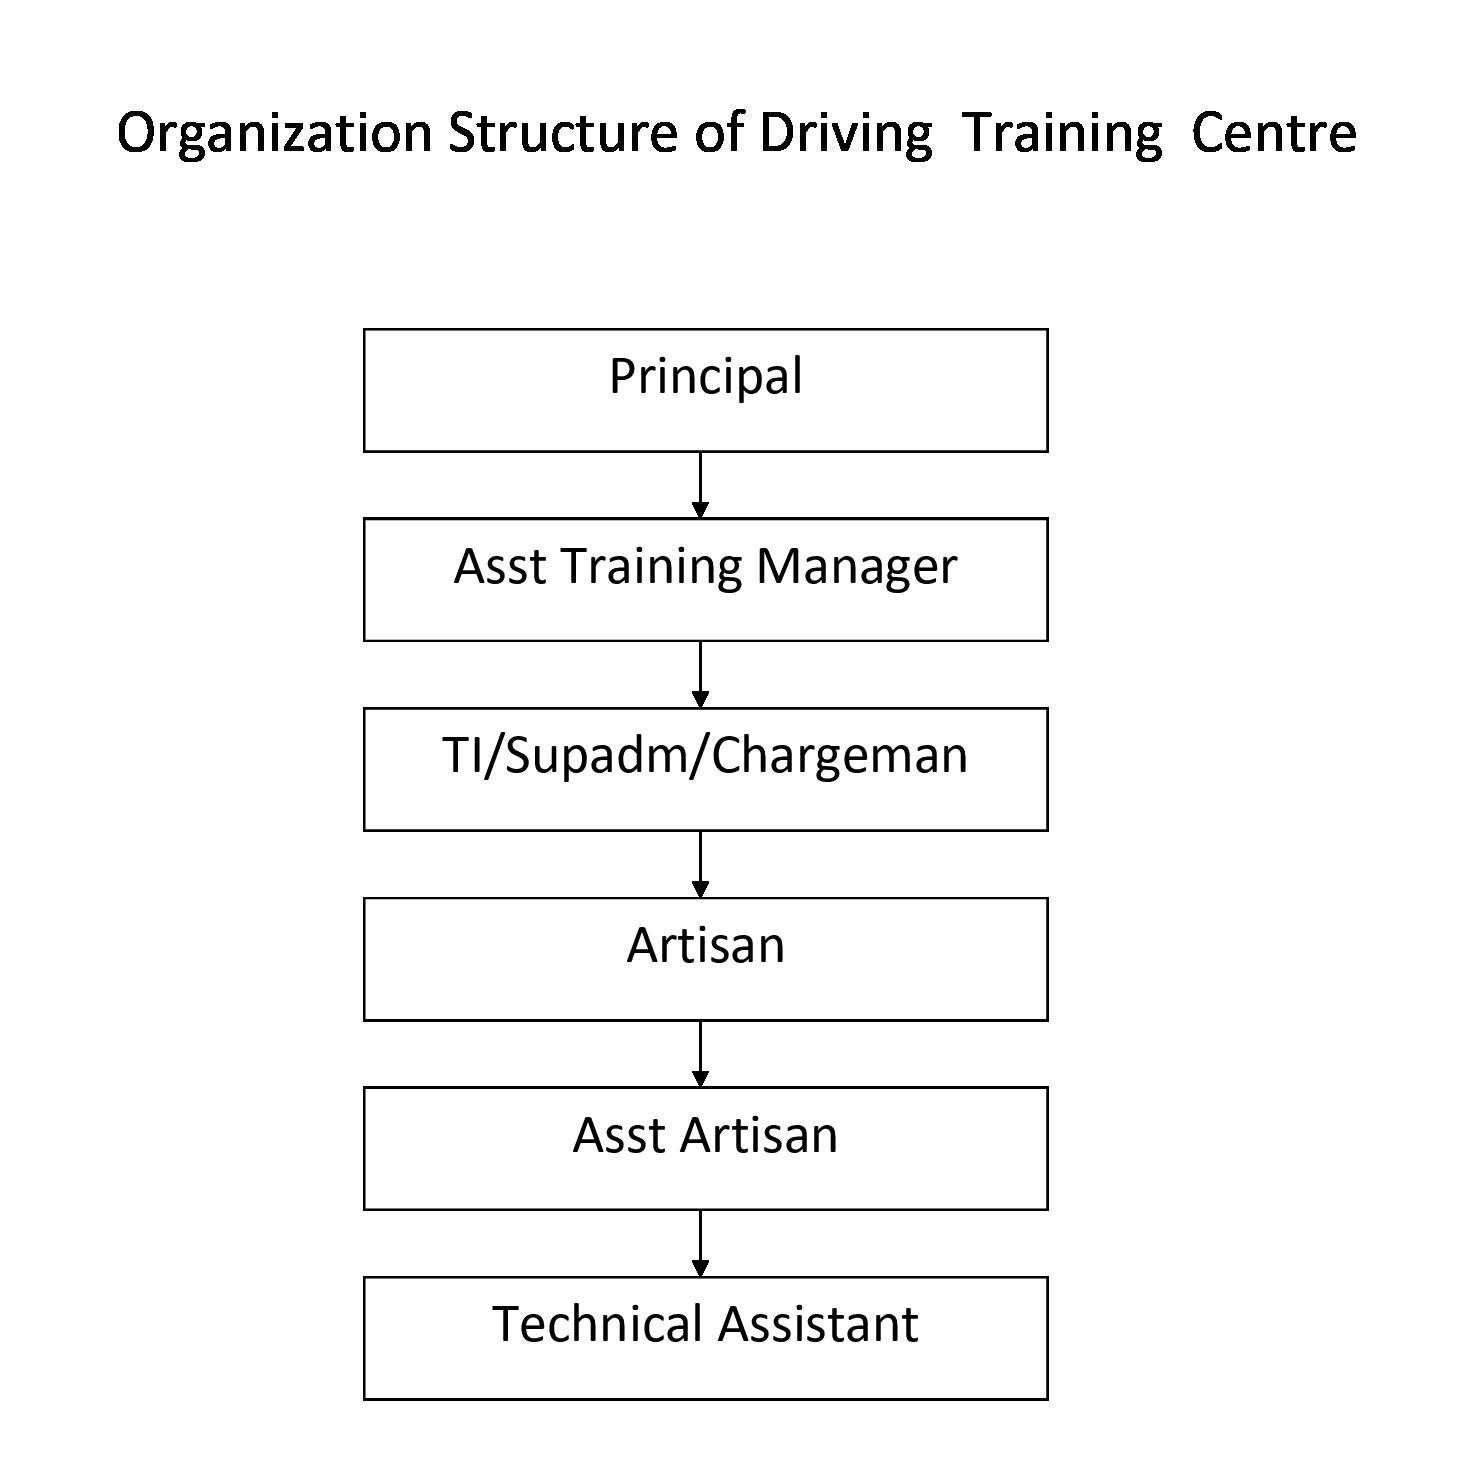 Organization-Structure-of-Driving-Training-Centre